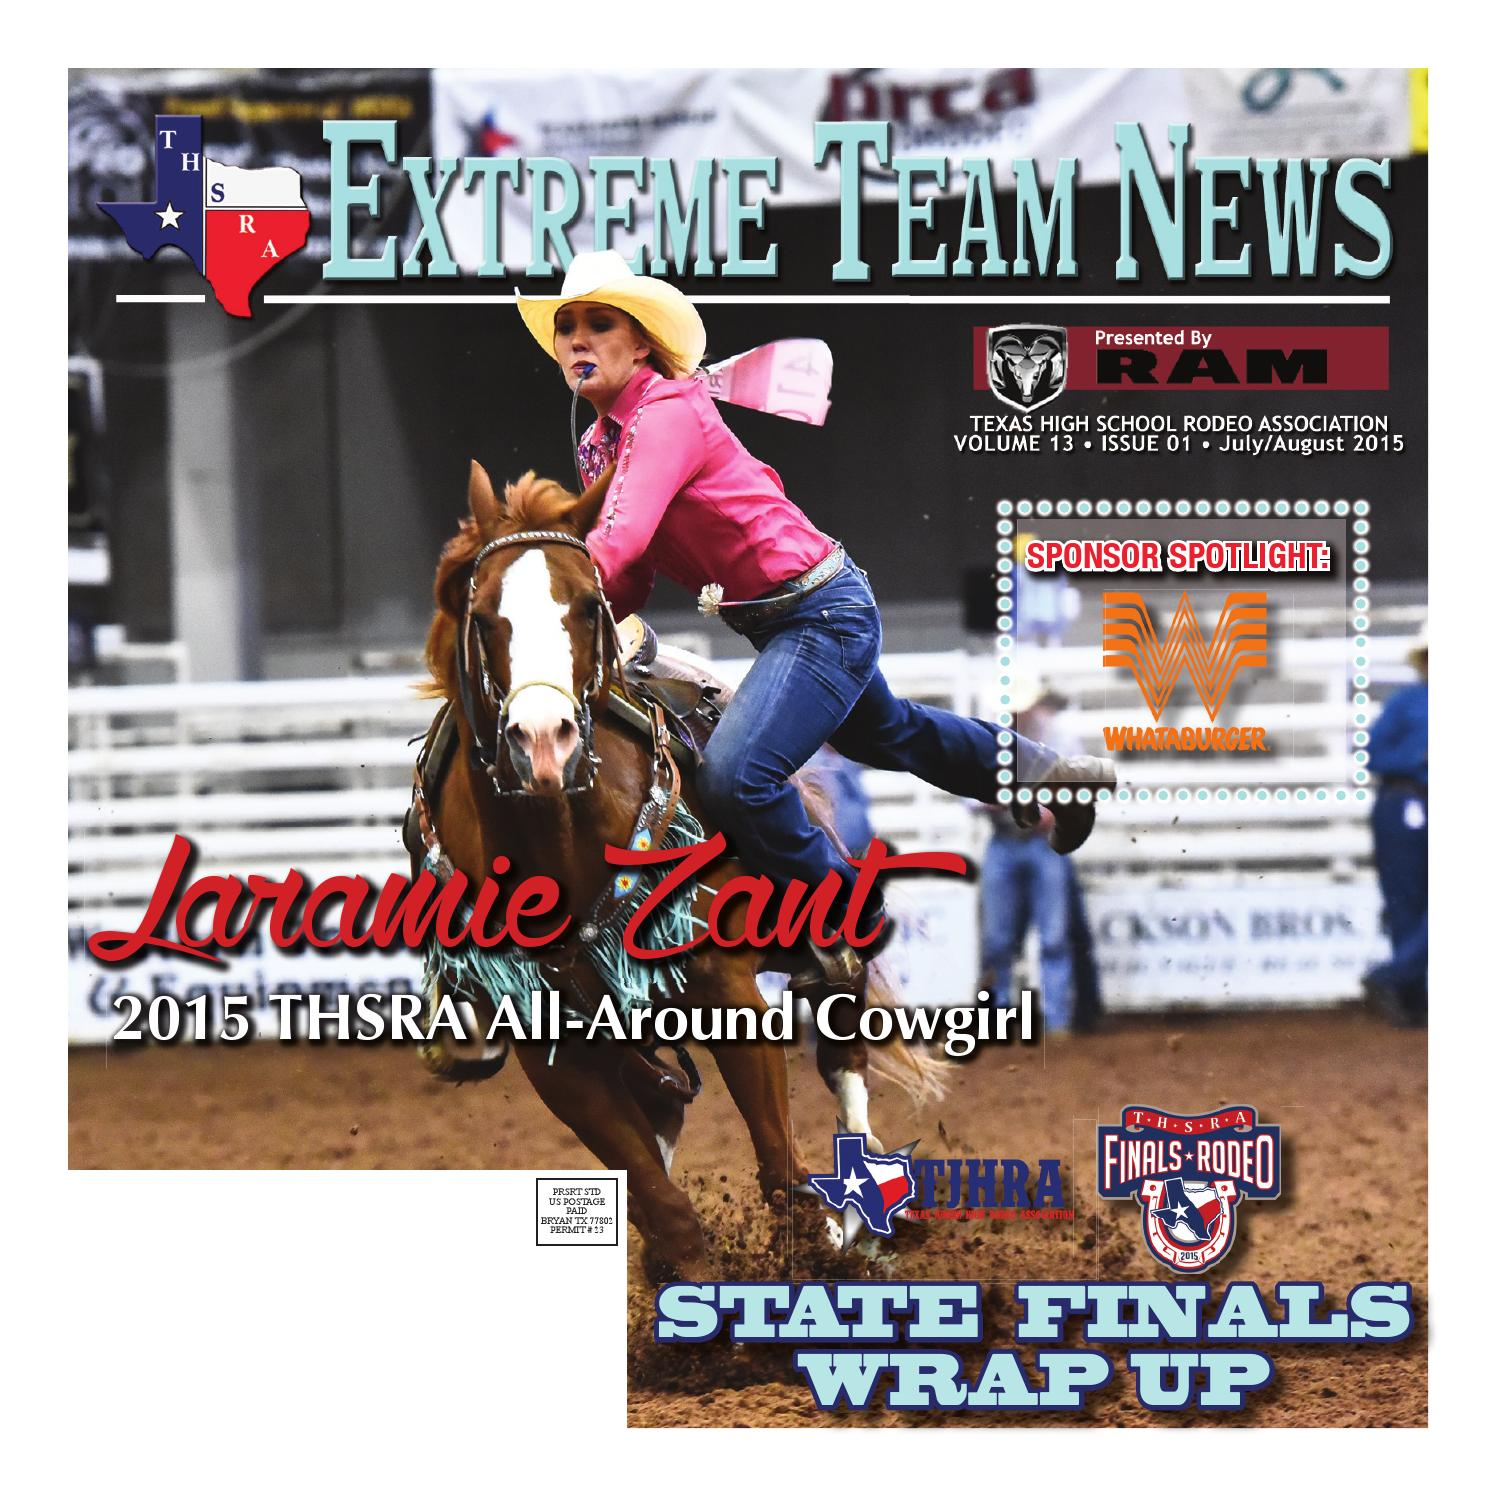 dae7b58780e July/August 2015 Extreme Team News, Official News of Texas High ...